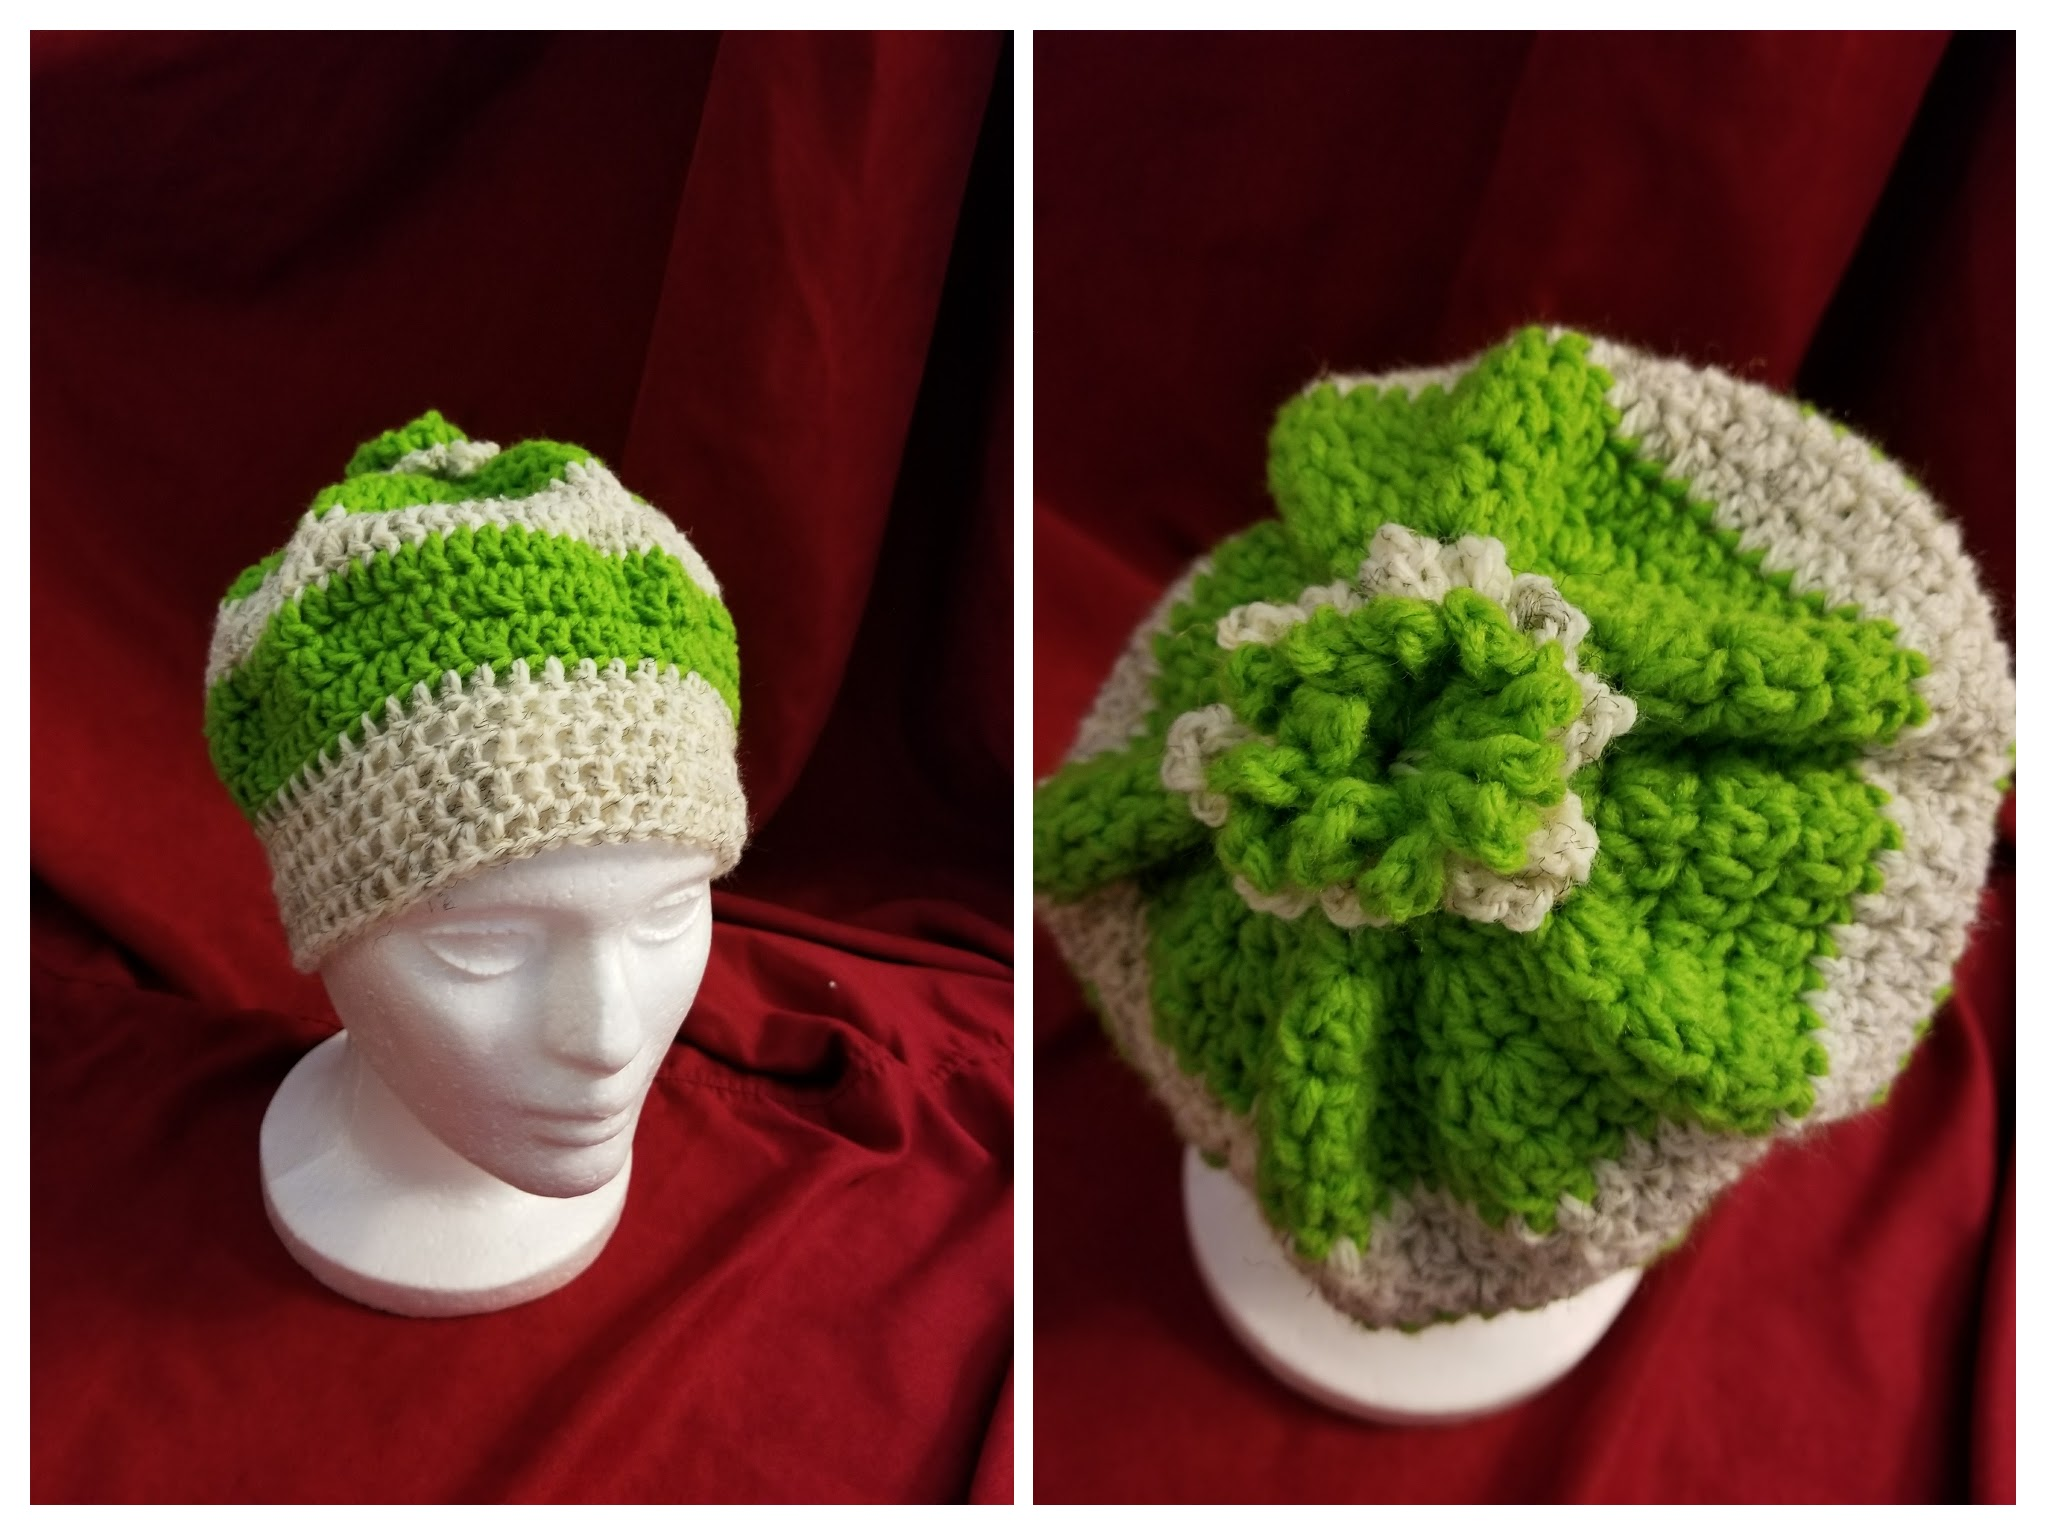 White and Green Hat.jpg